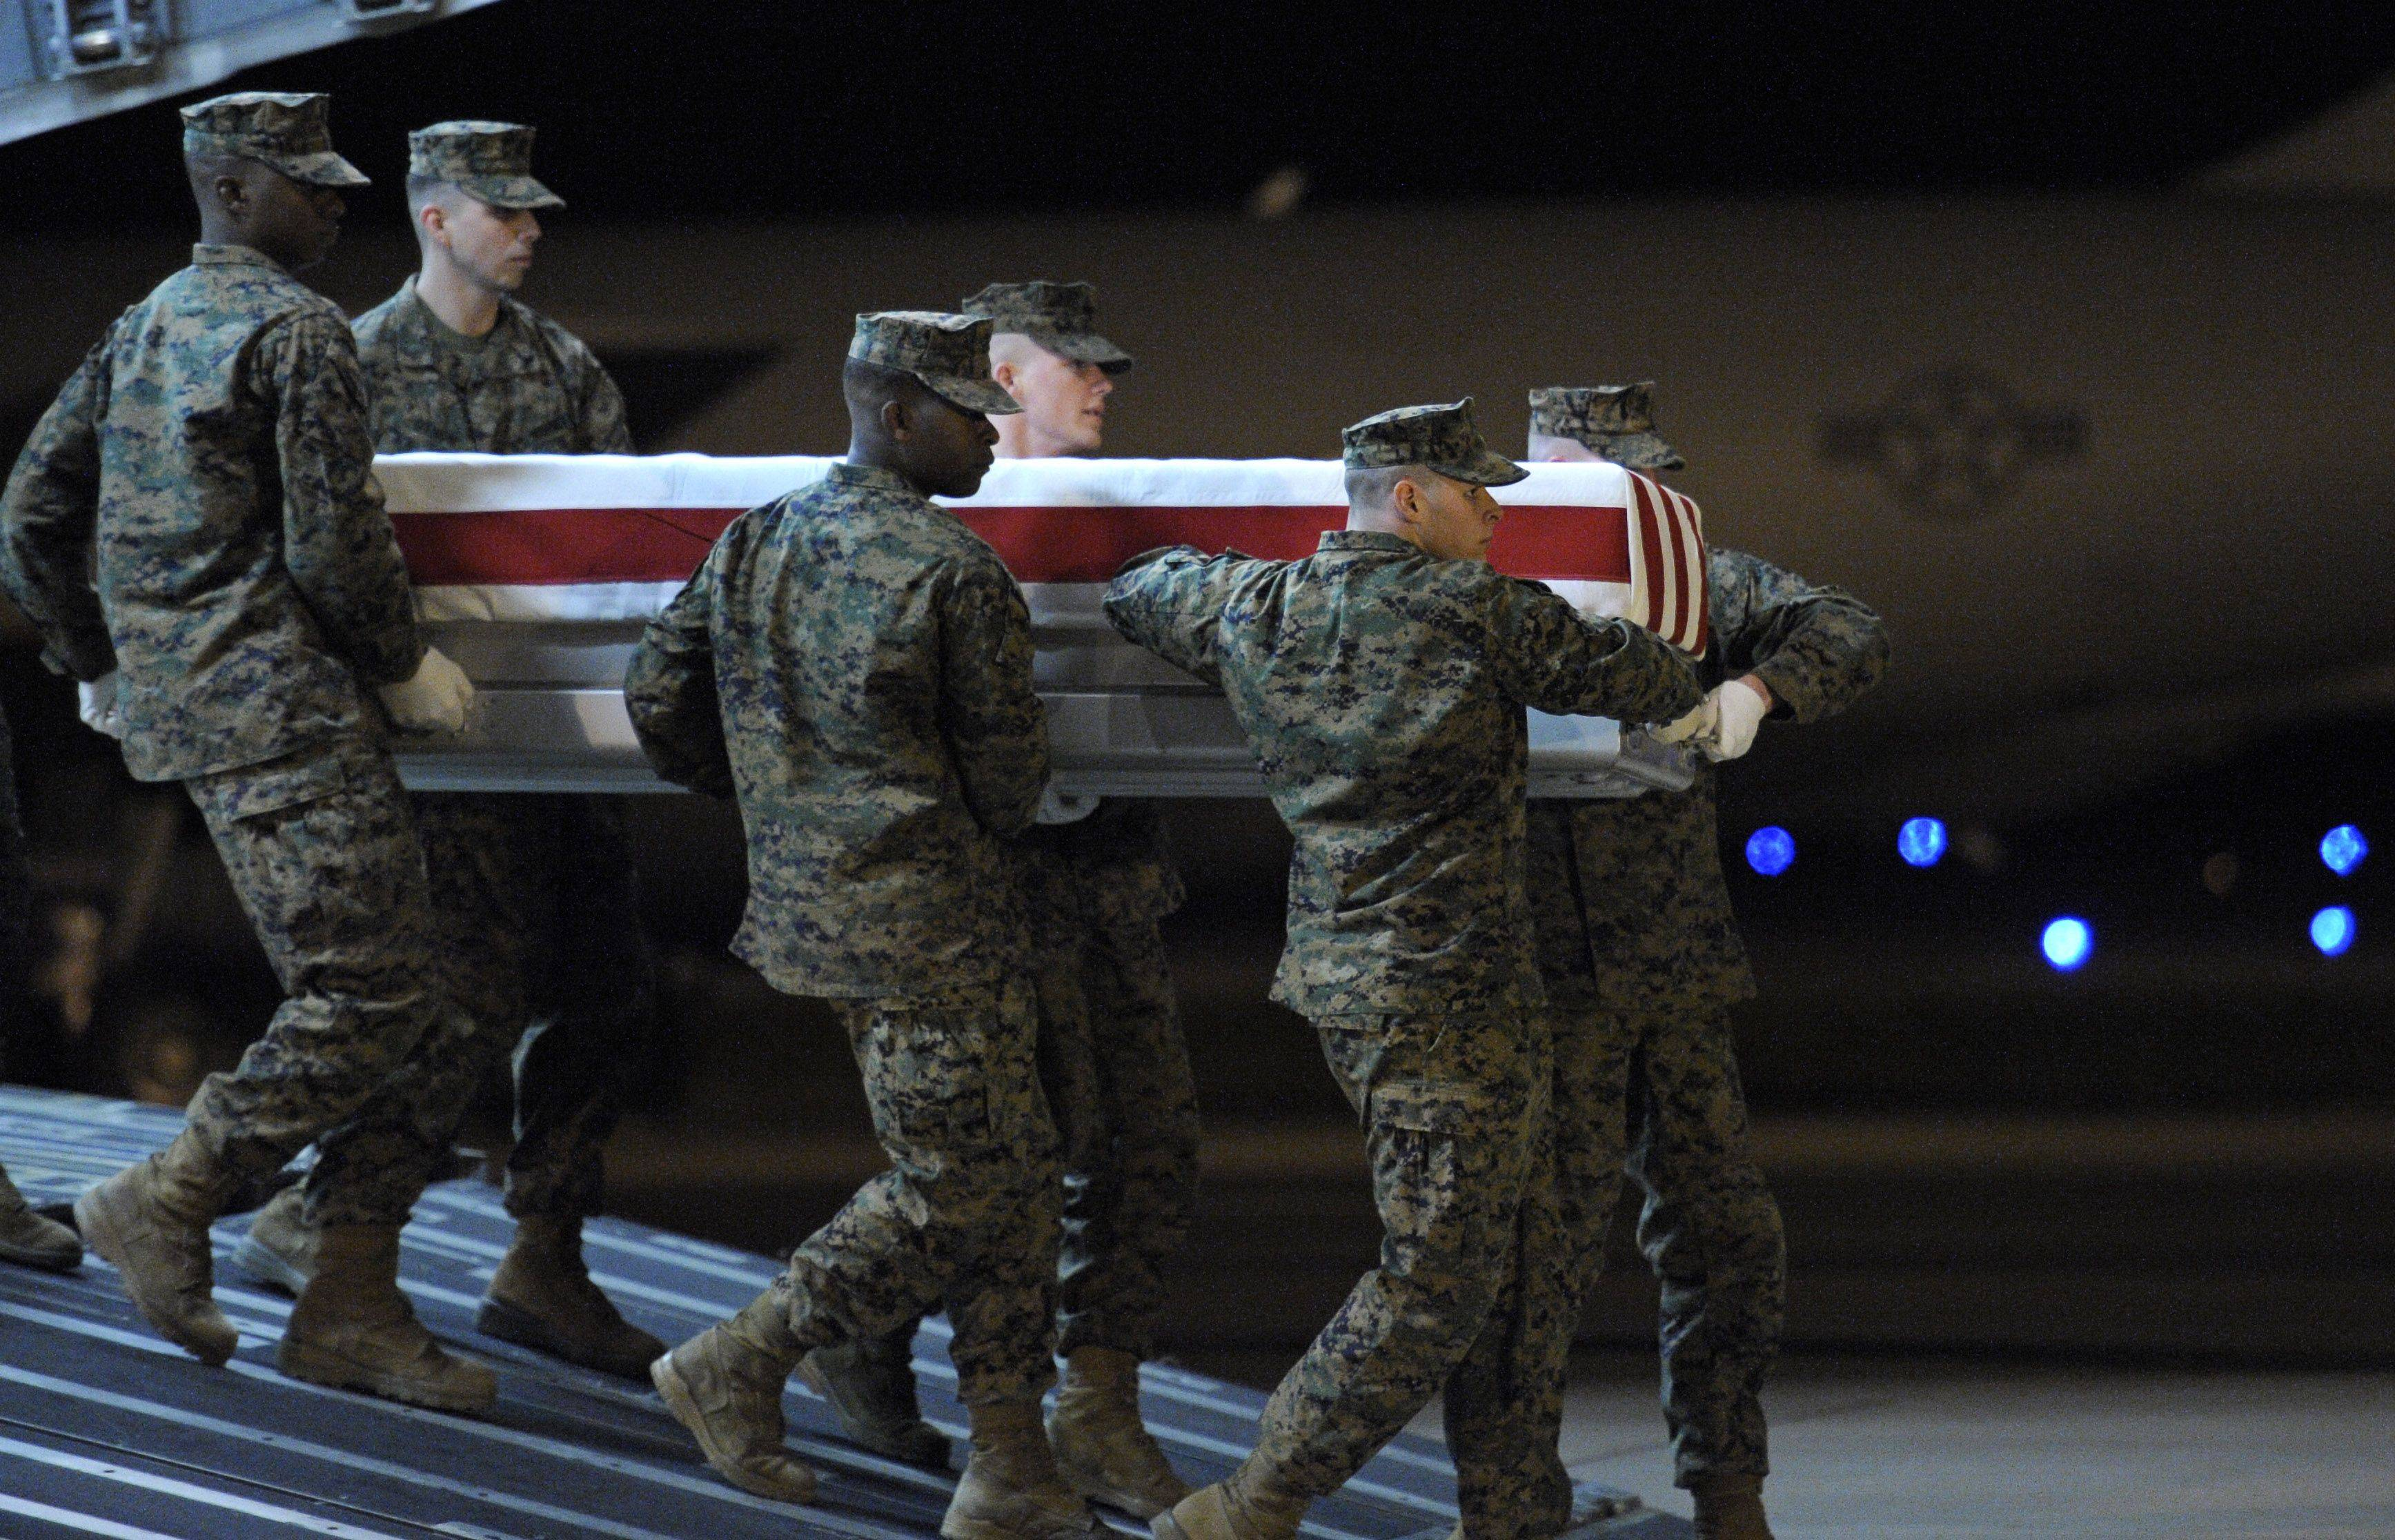 A Marine Corps team carries the flag-draped casket of Marine Lance Cpl. James Stack, 20, of Arlington Heights at Dover Air Force Base in Delaware Friday.